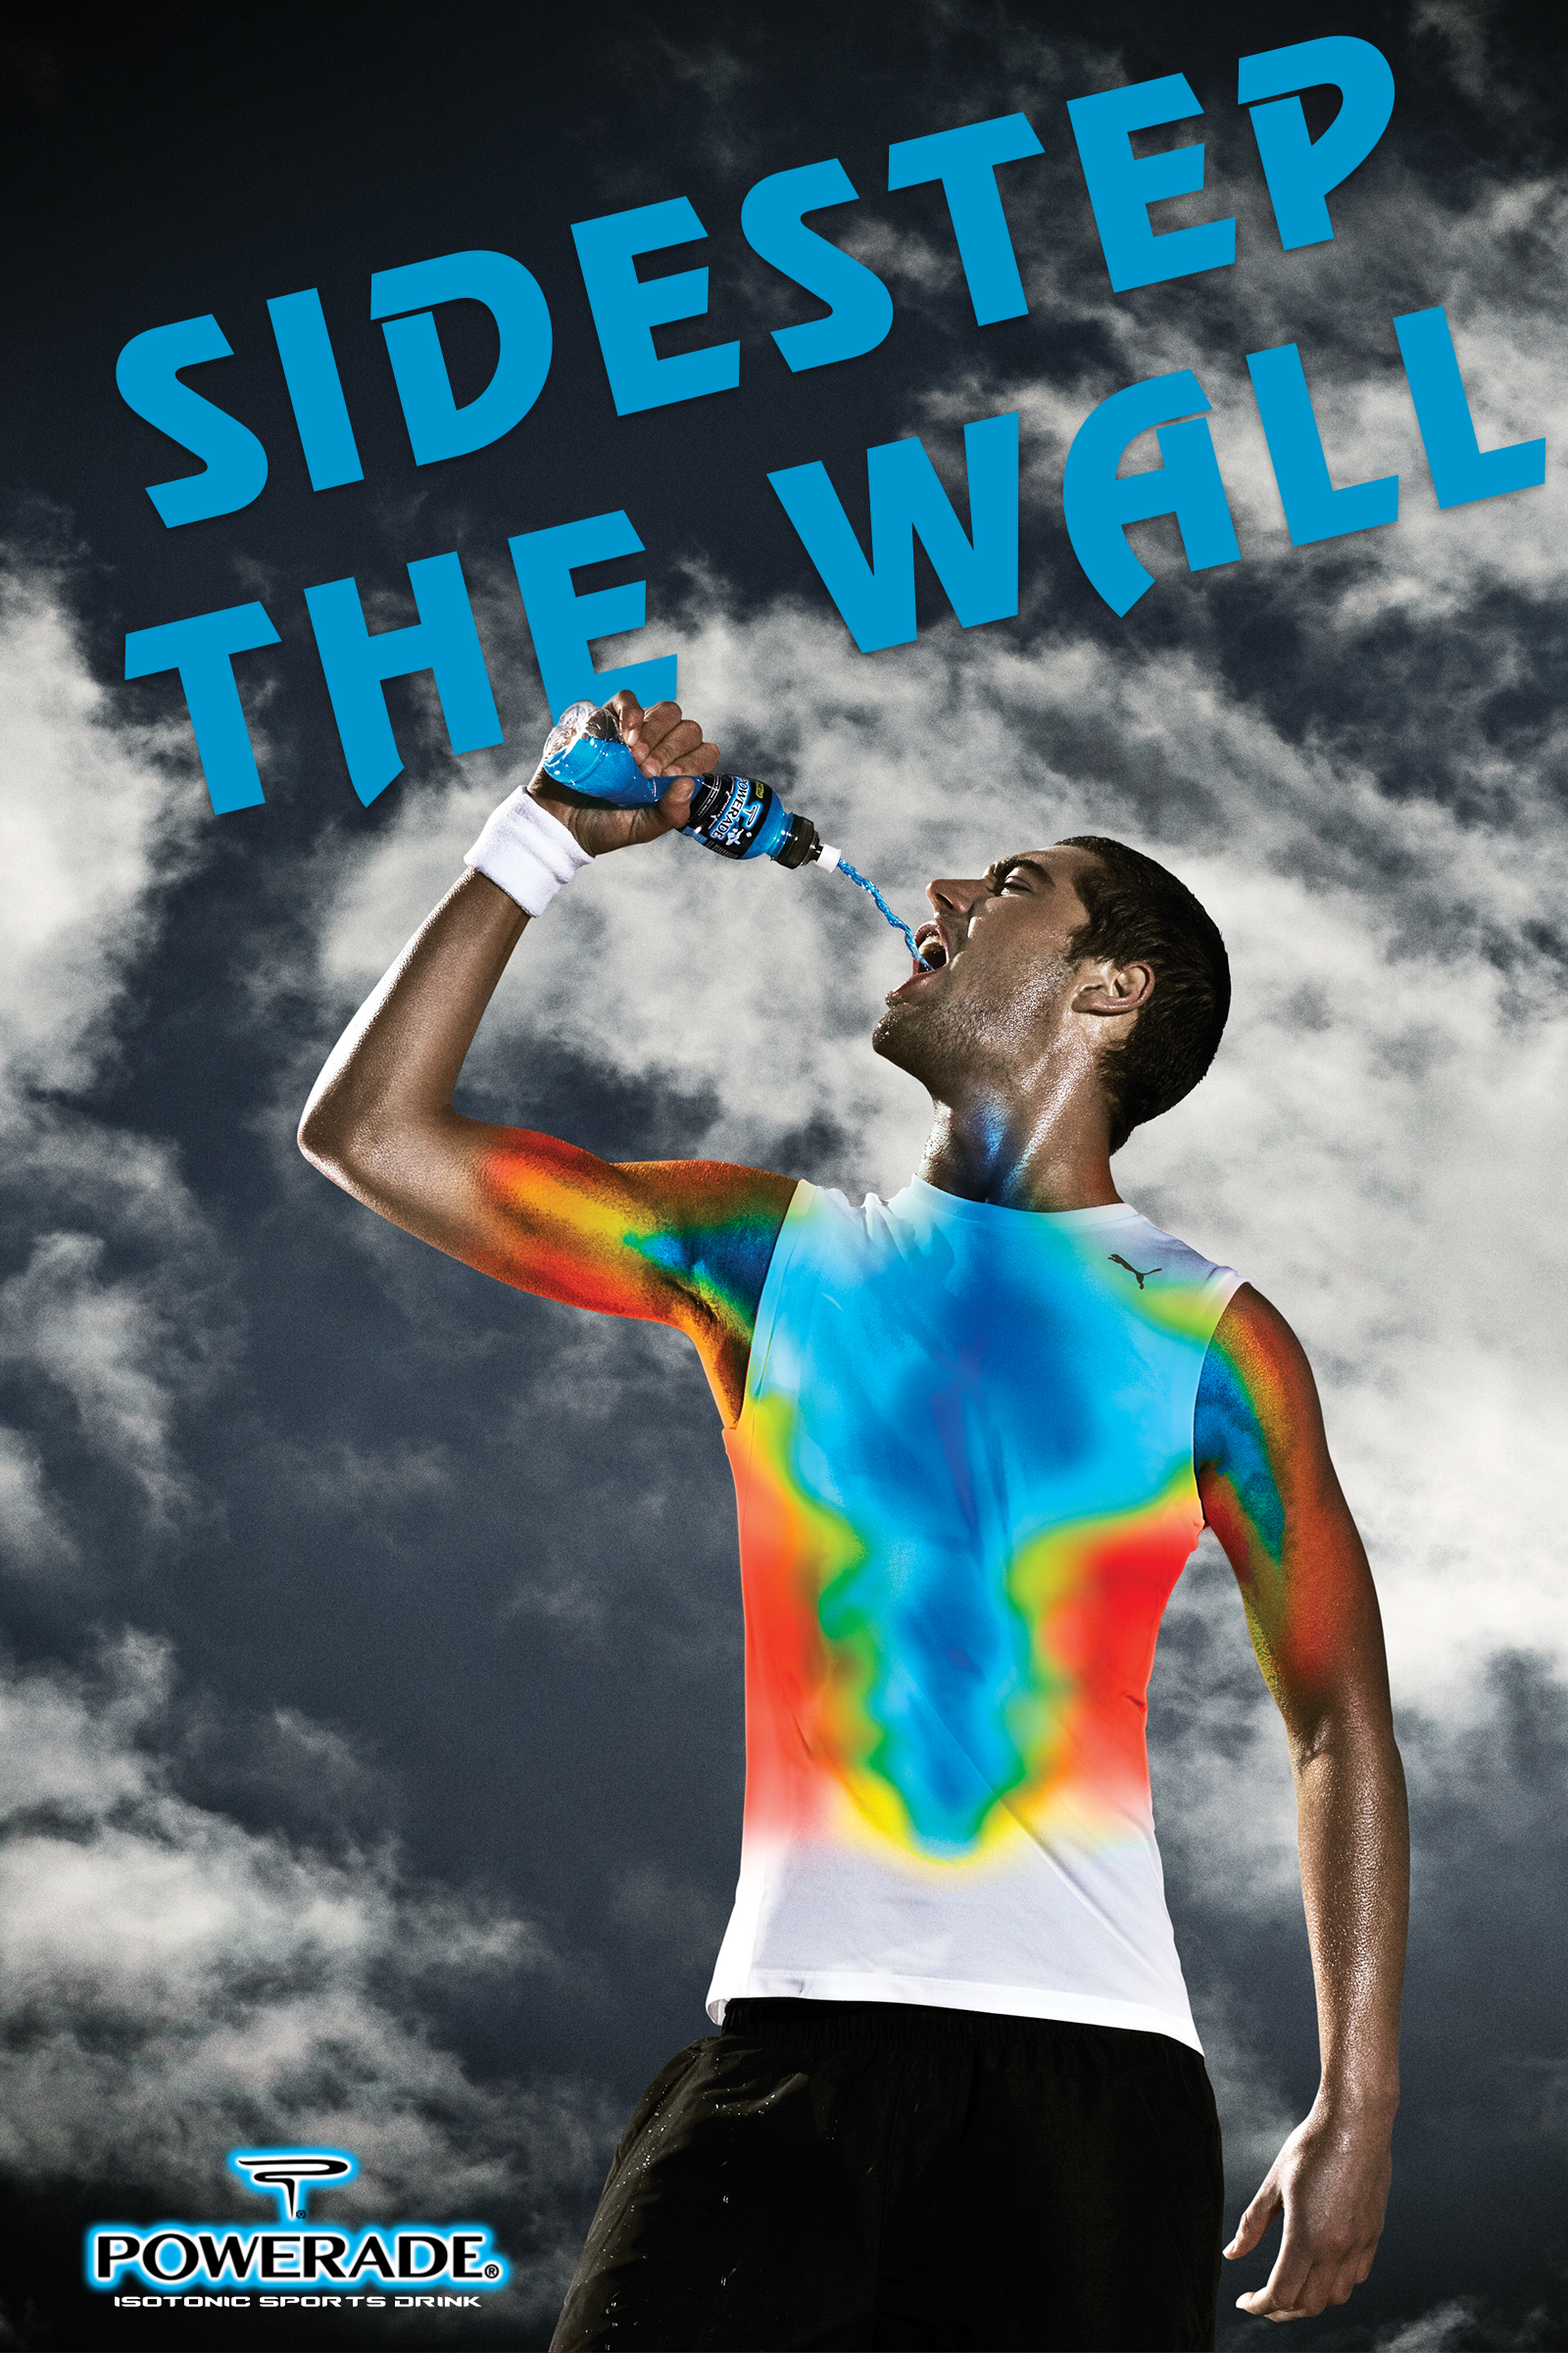 Powerade   Art Direction   Design   By James-Lee Duffy